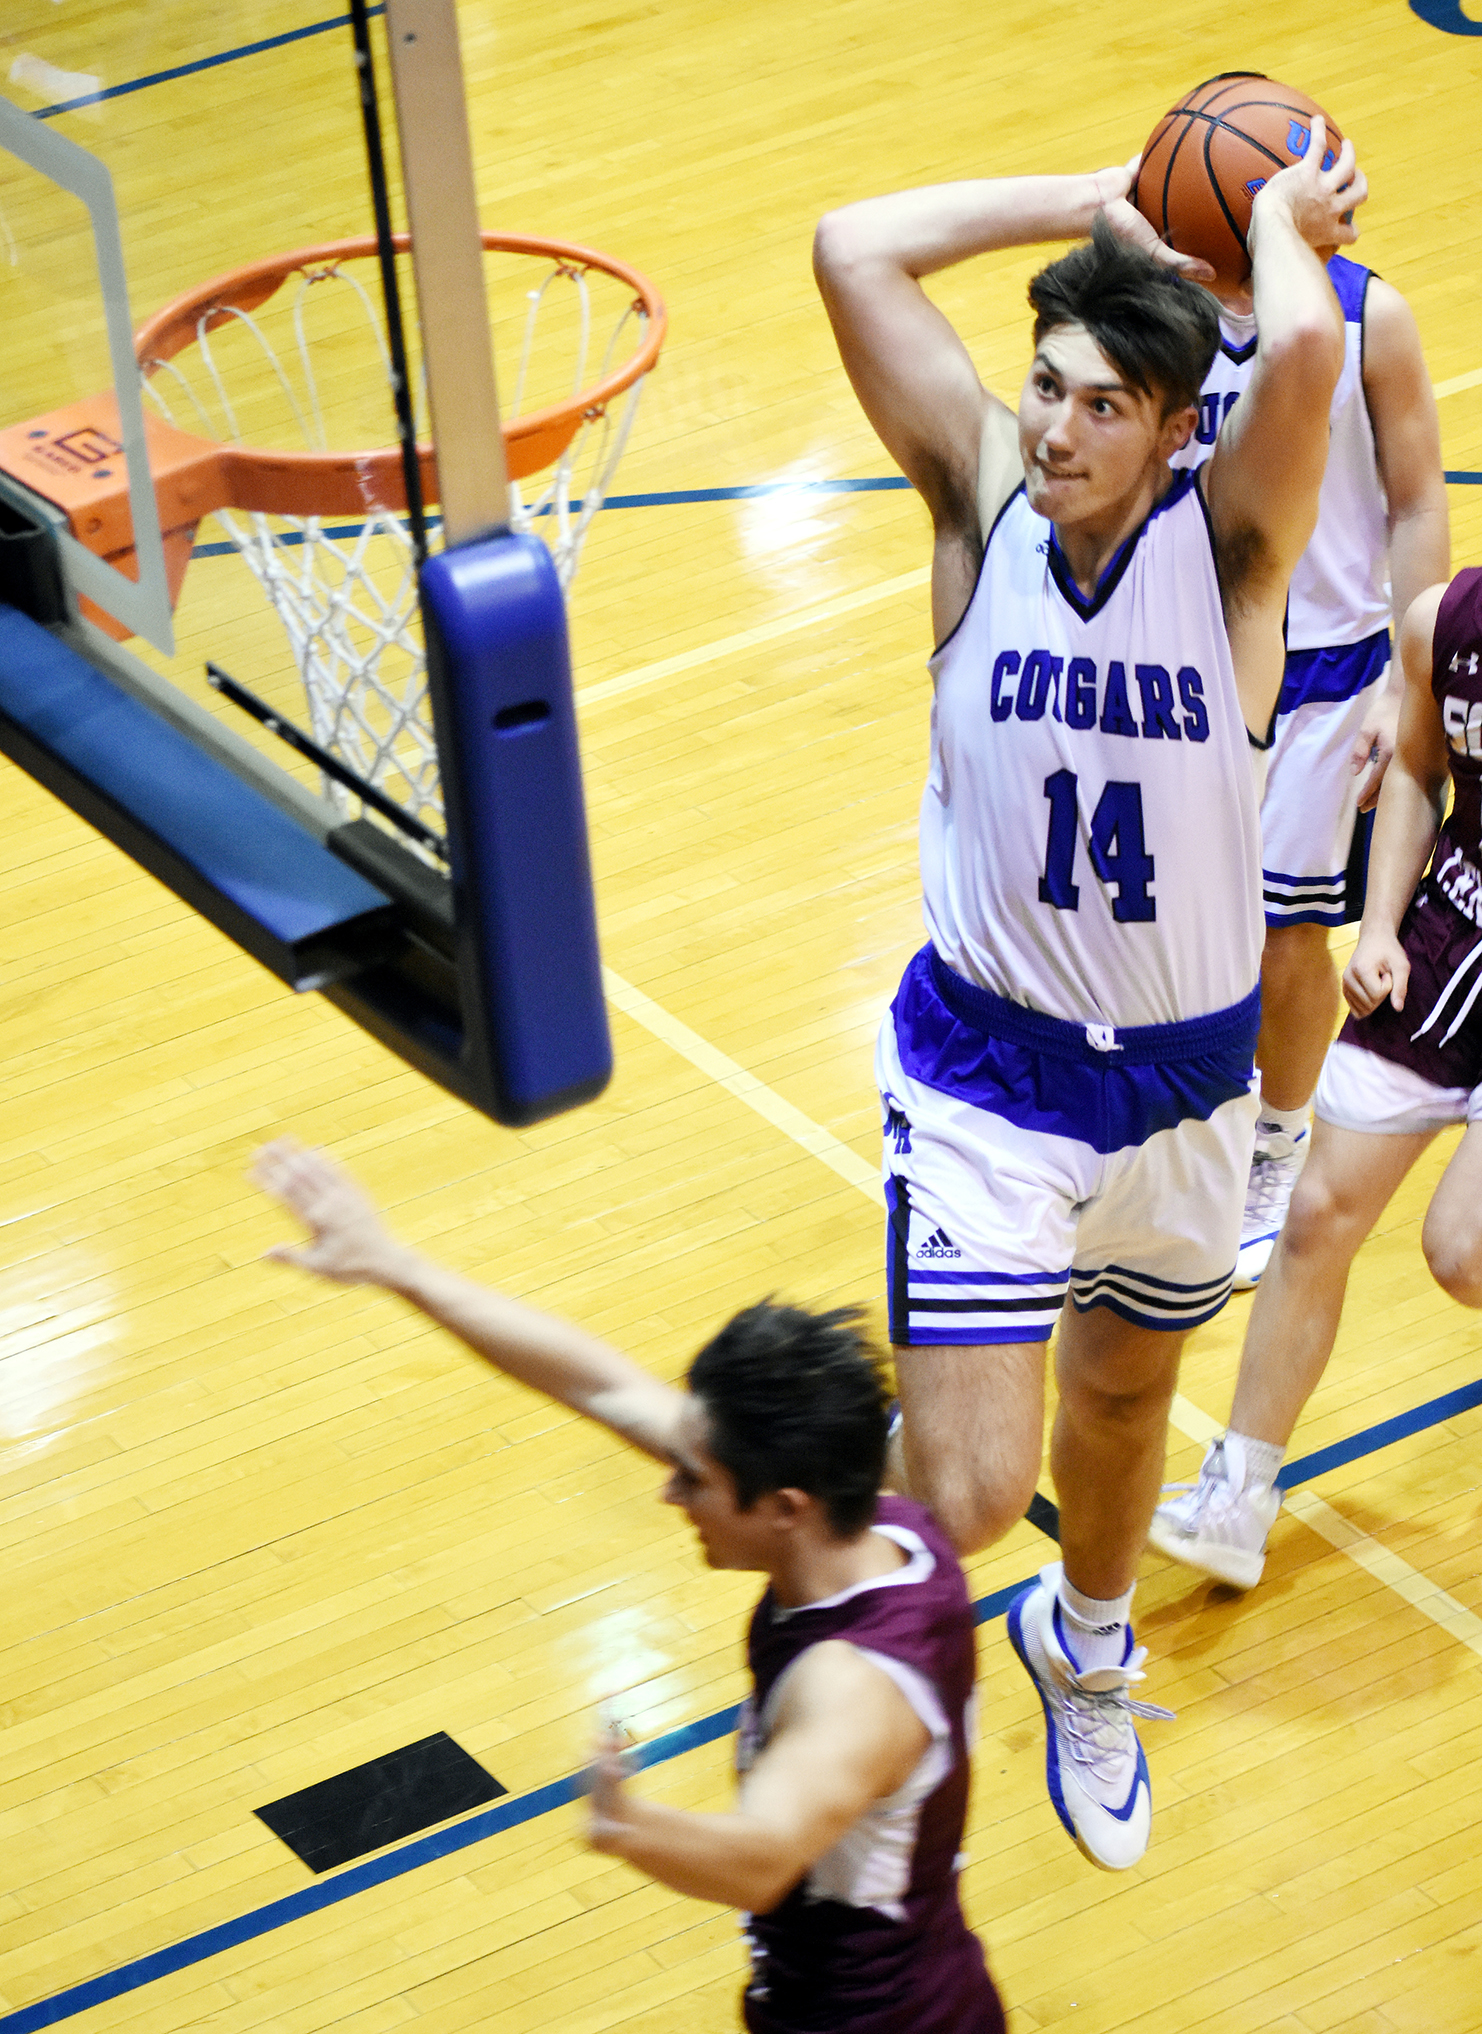 Cougars pounce on Rebels, 71-38